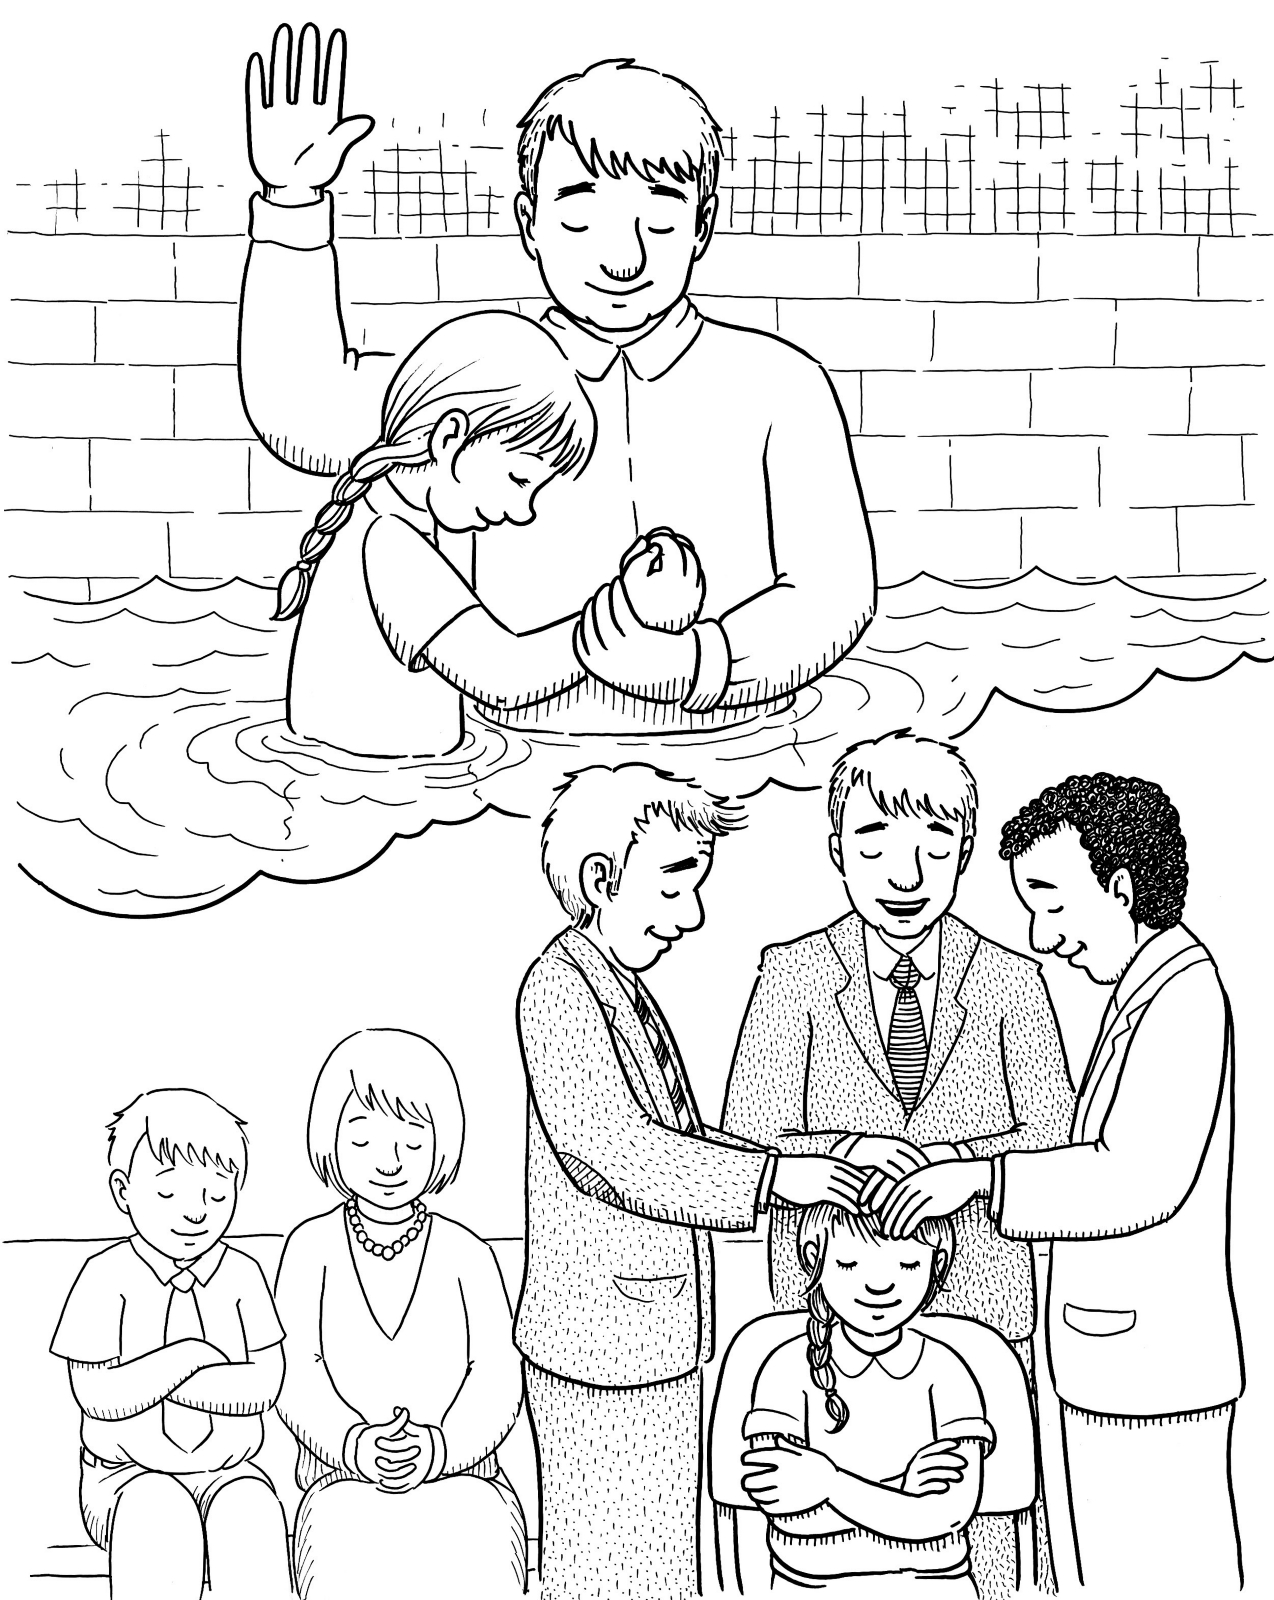 Baptism and the Gift of the Holy Ghost